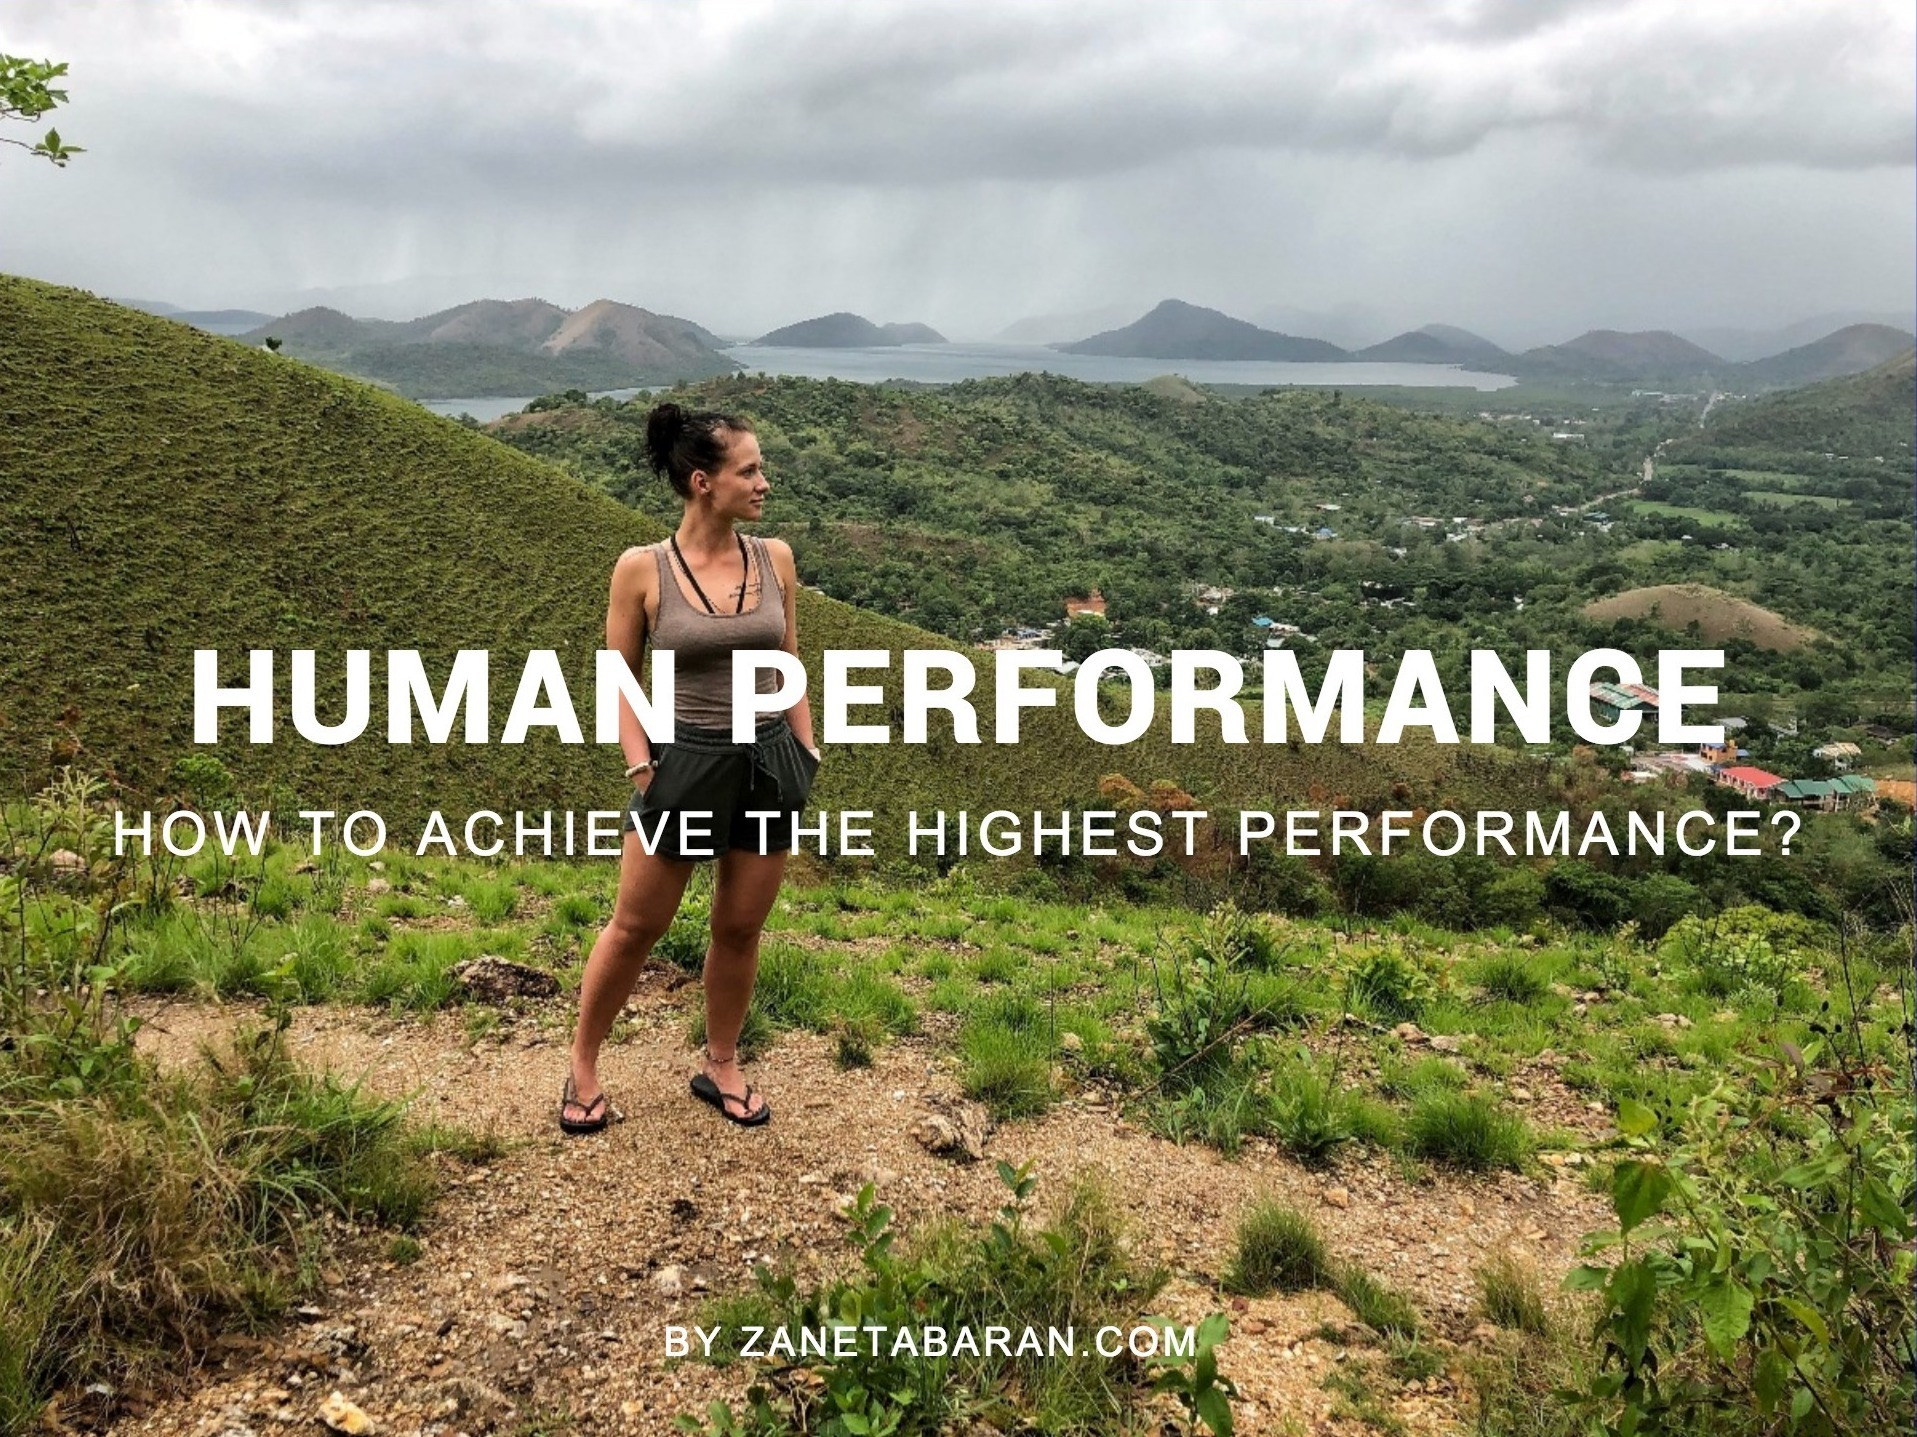 Human Performance - How To Achieve The Highest Performance